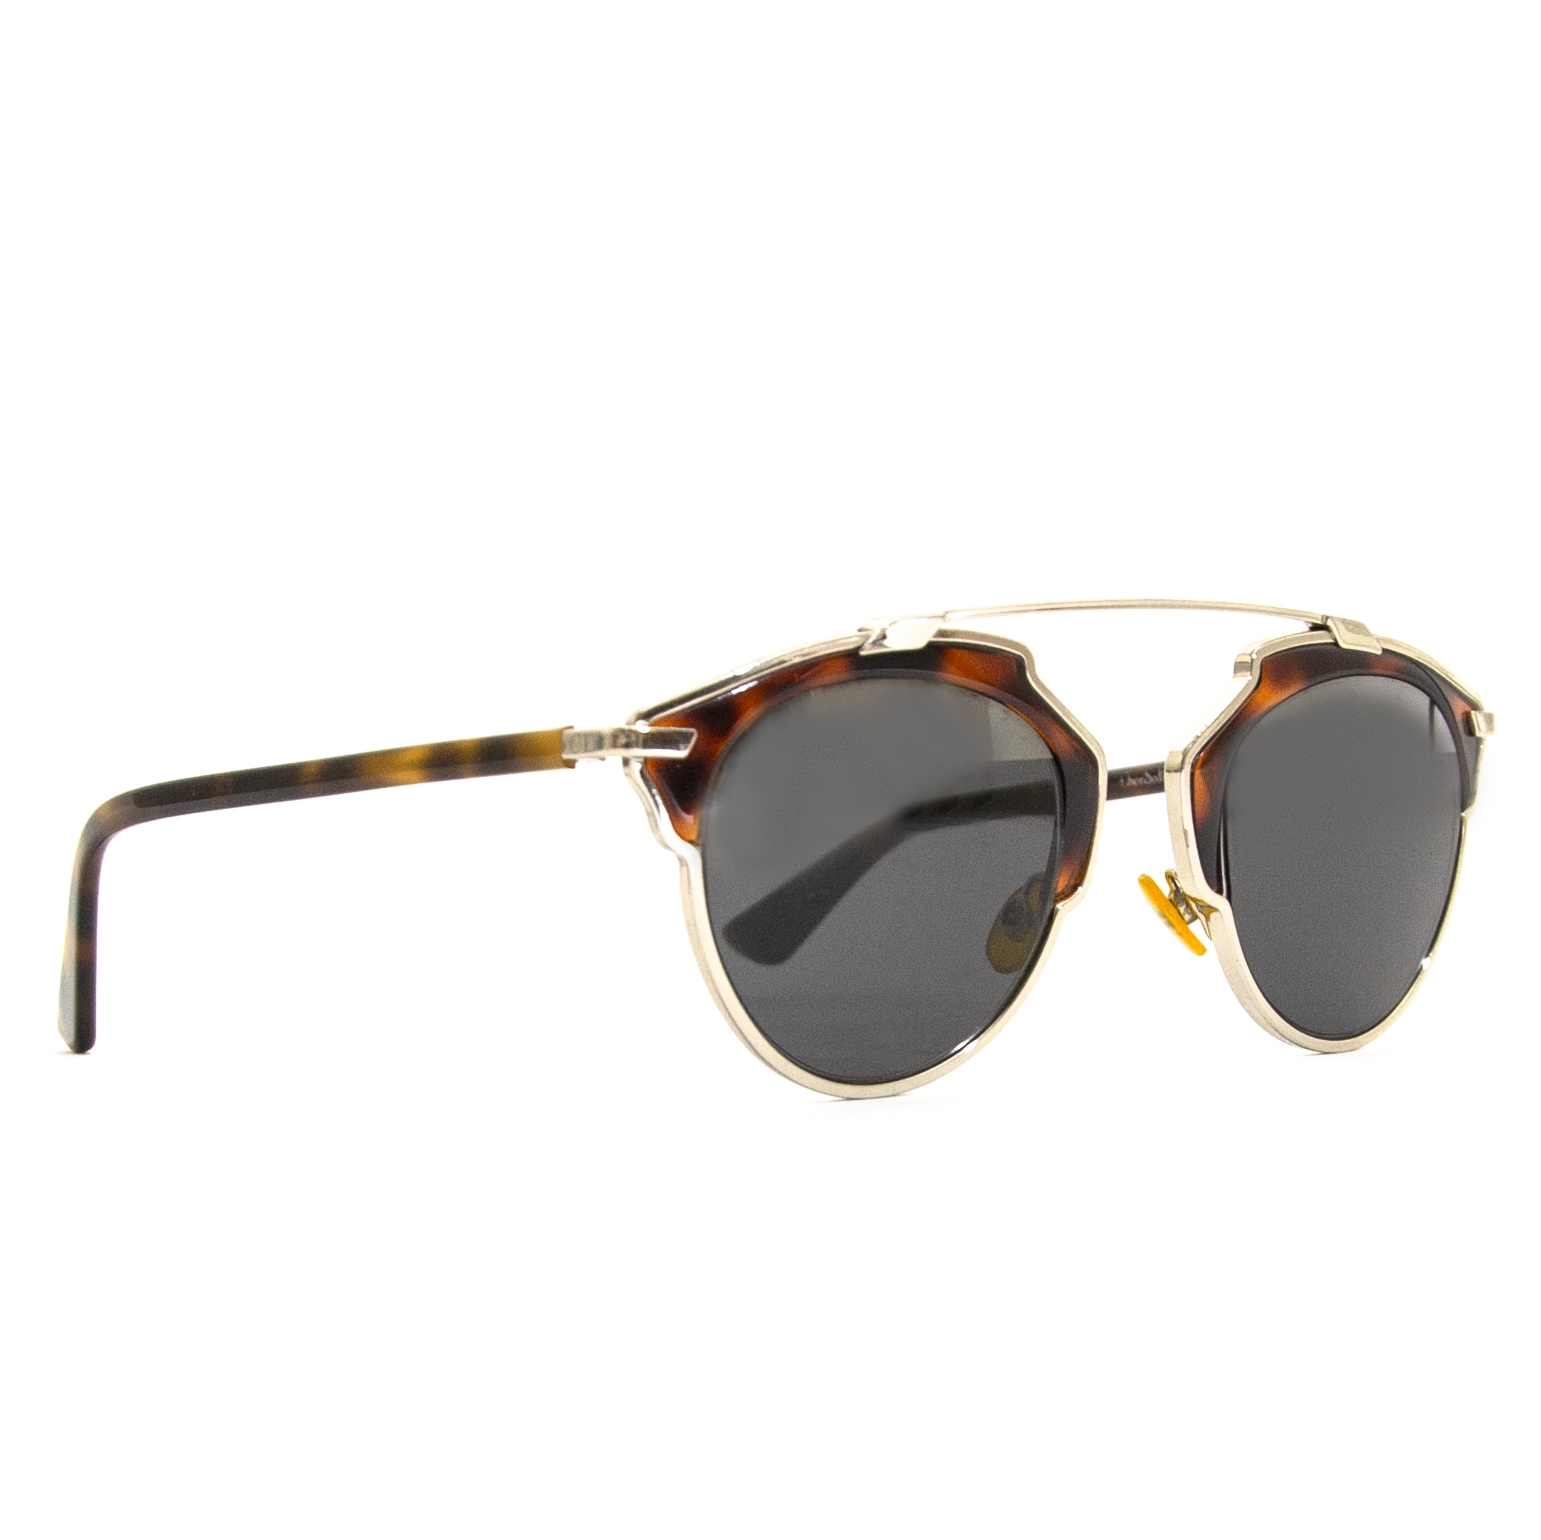 buy  Dior Brown So Real Sunglasses at labellov for the best price